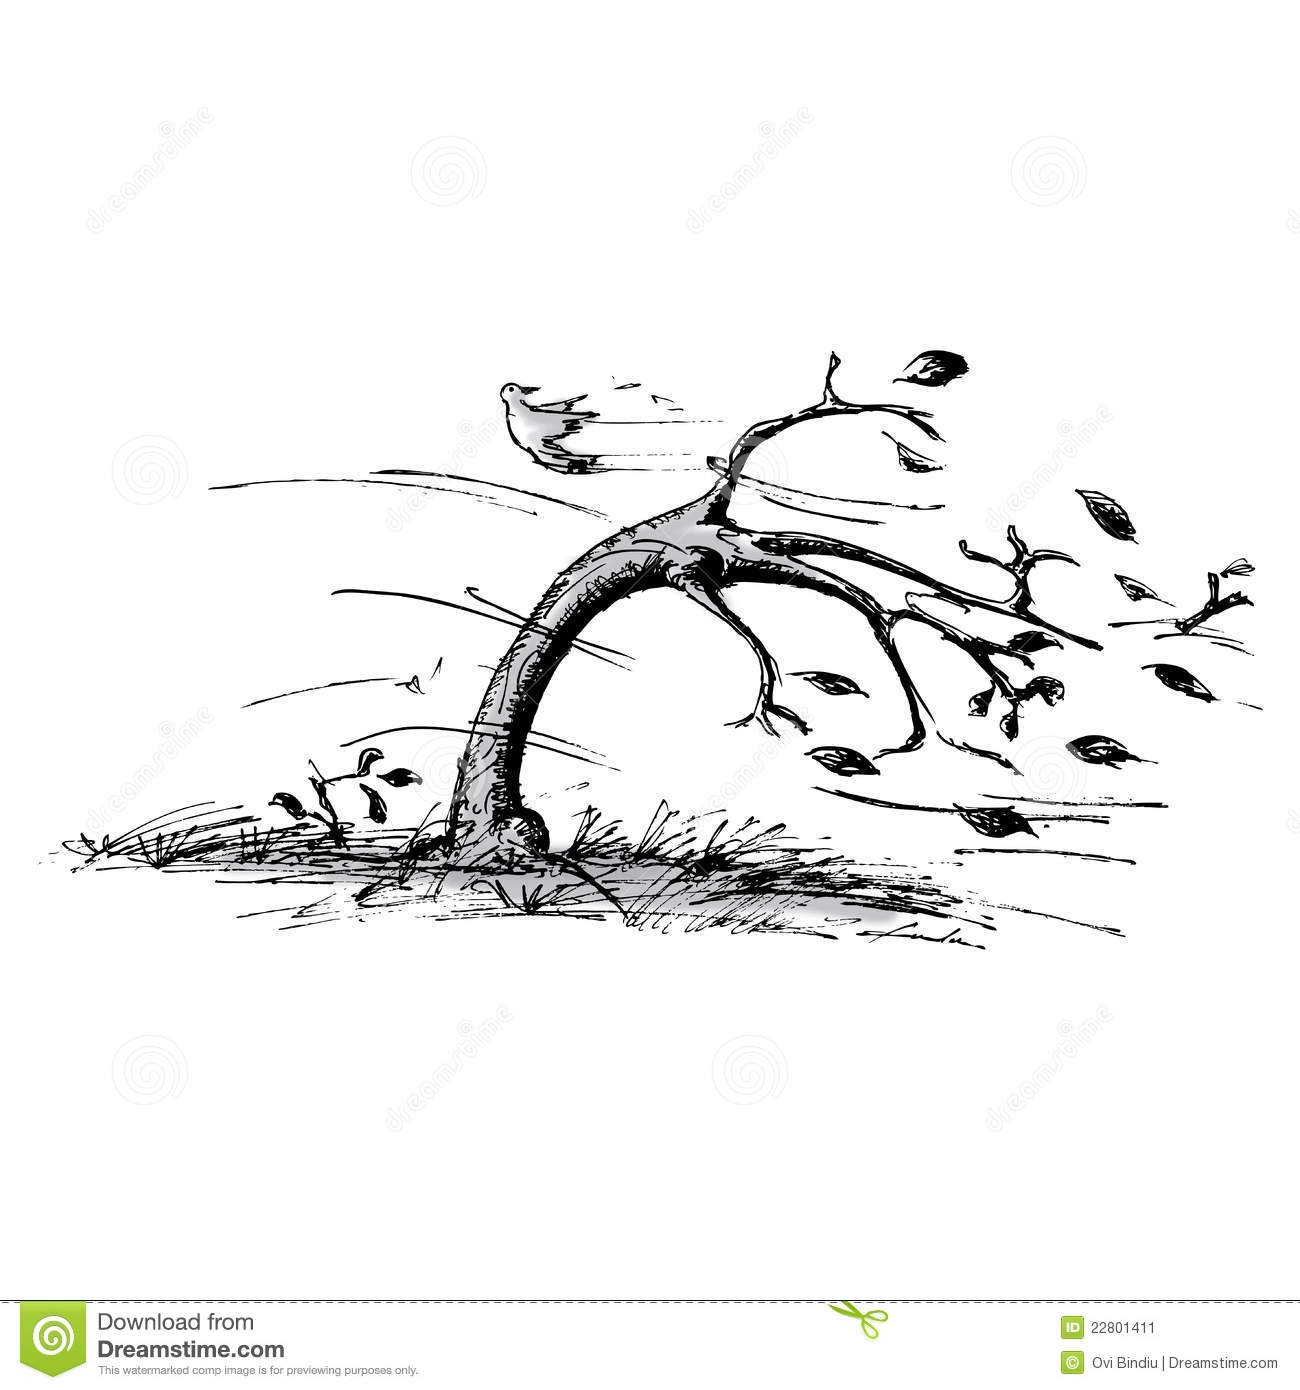 Trees blowing in the wind clipart.